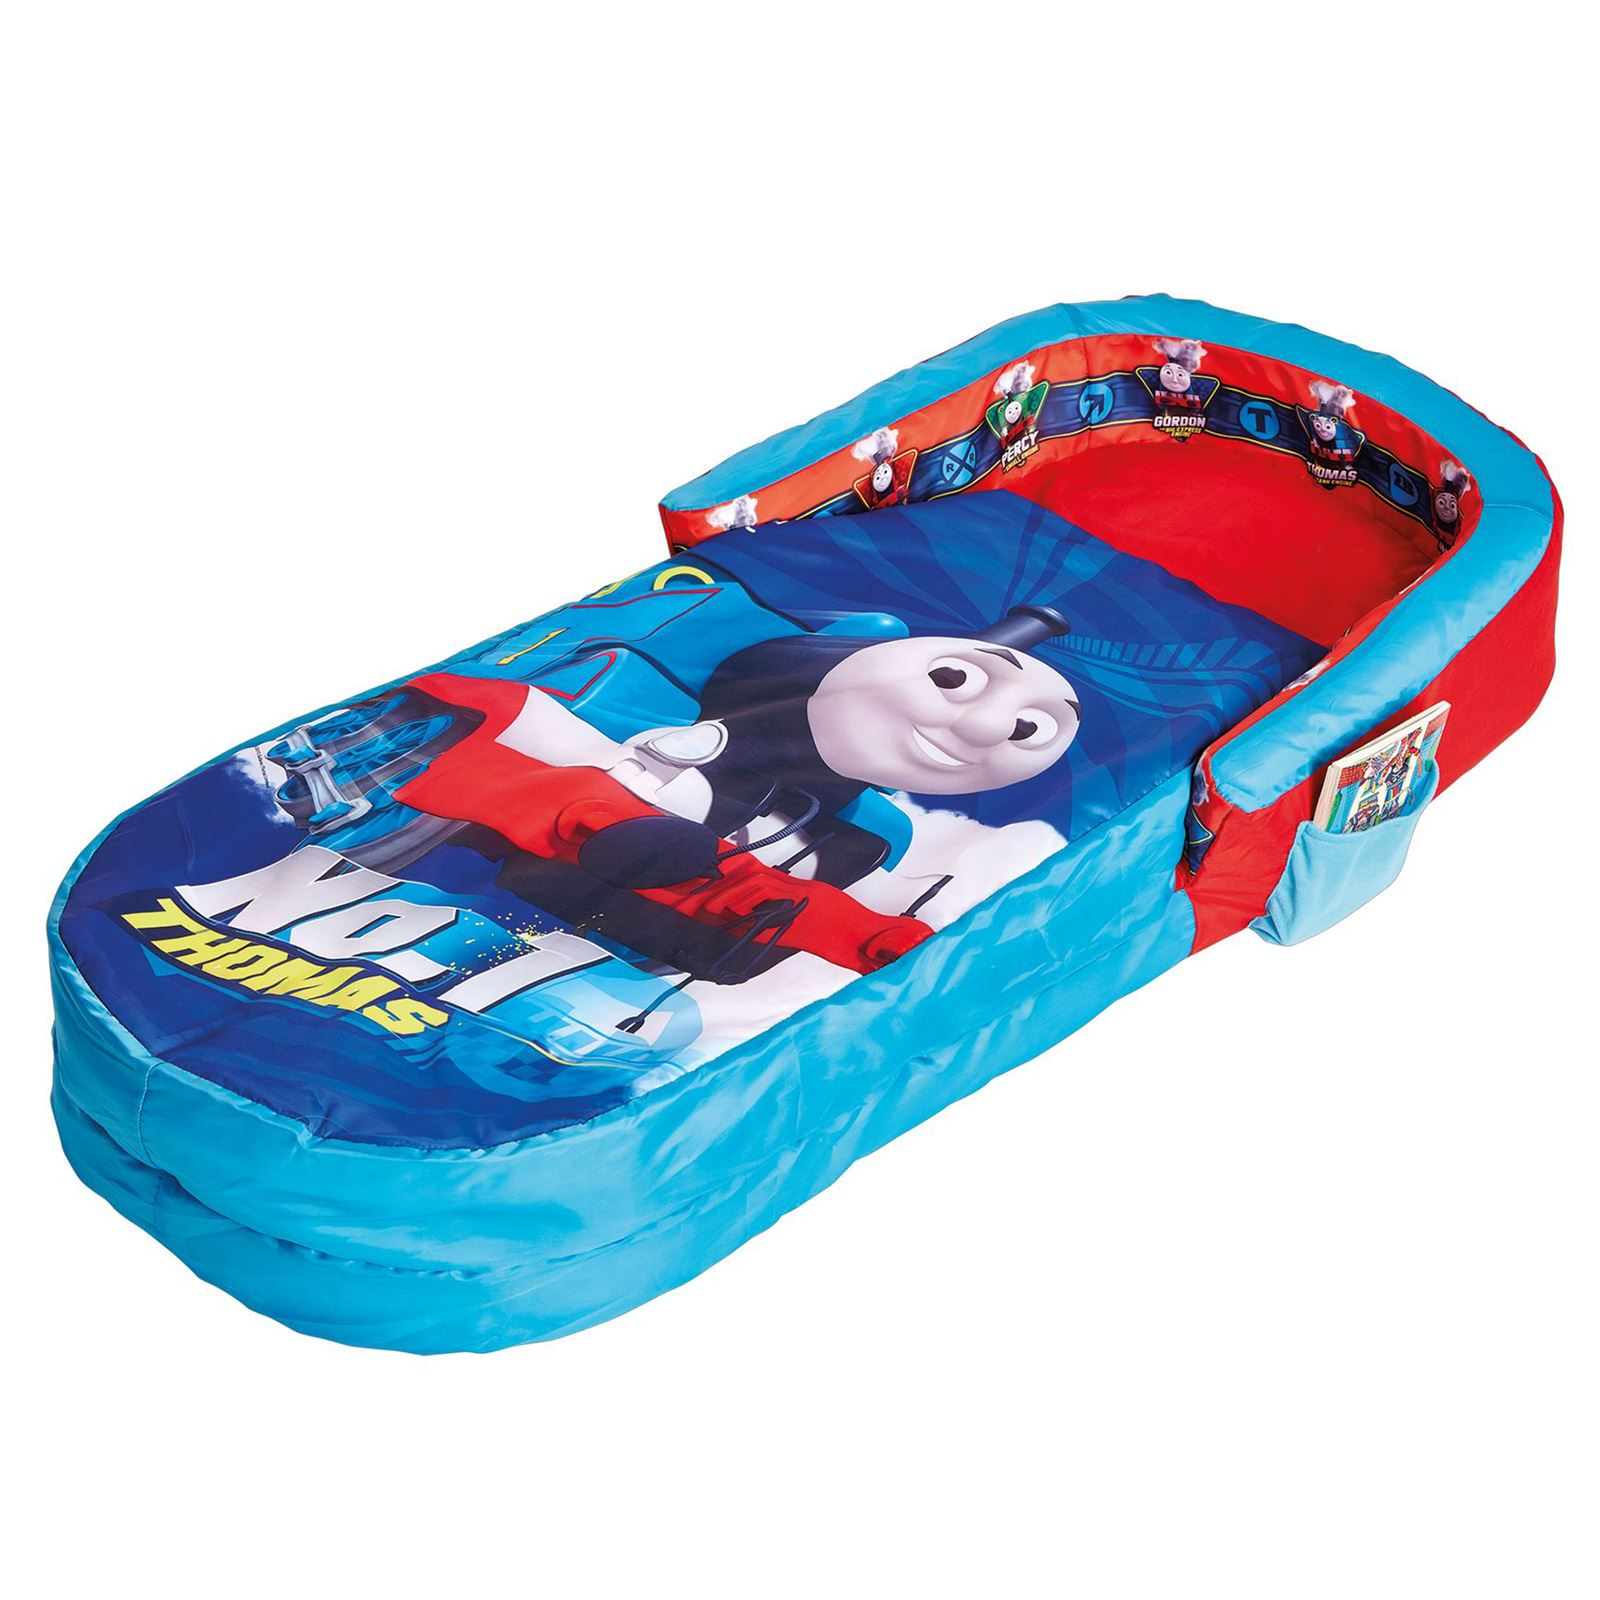 KIDS READY BED INFLATABLE AIR BEDS CAMPING SLEEPOVERS ...